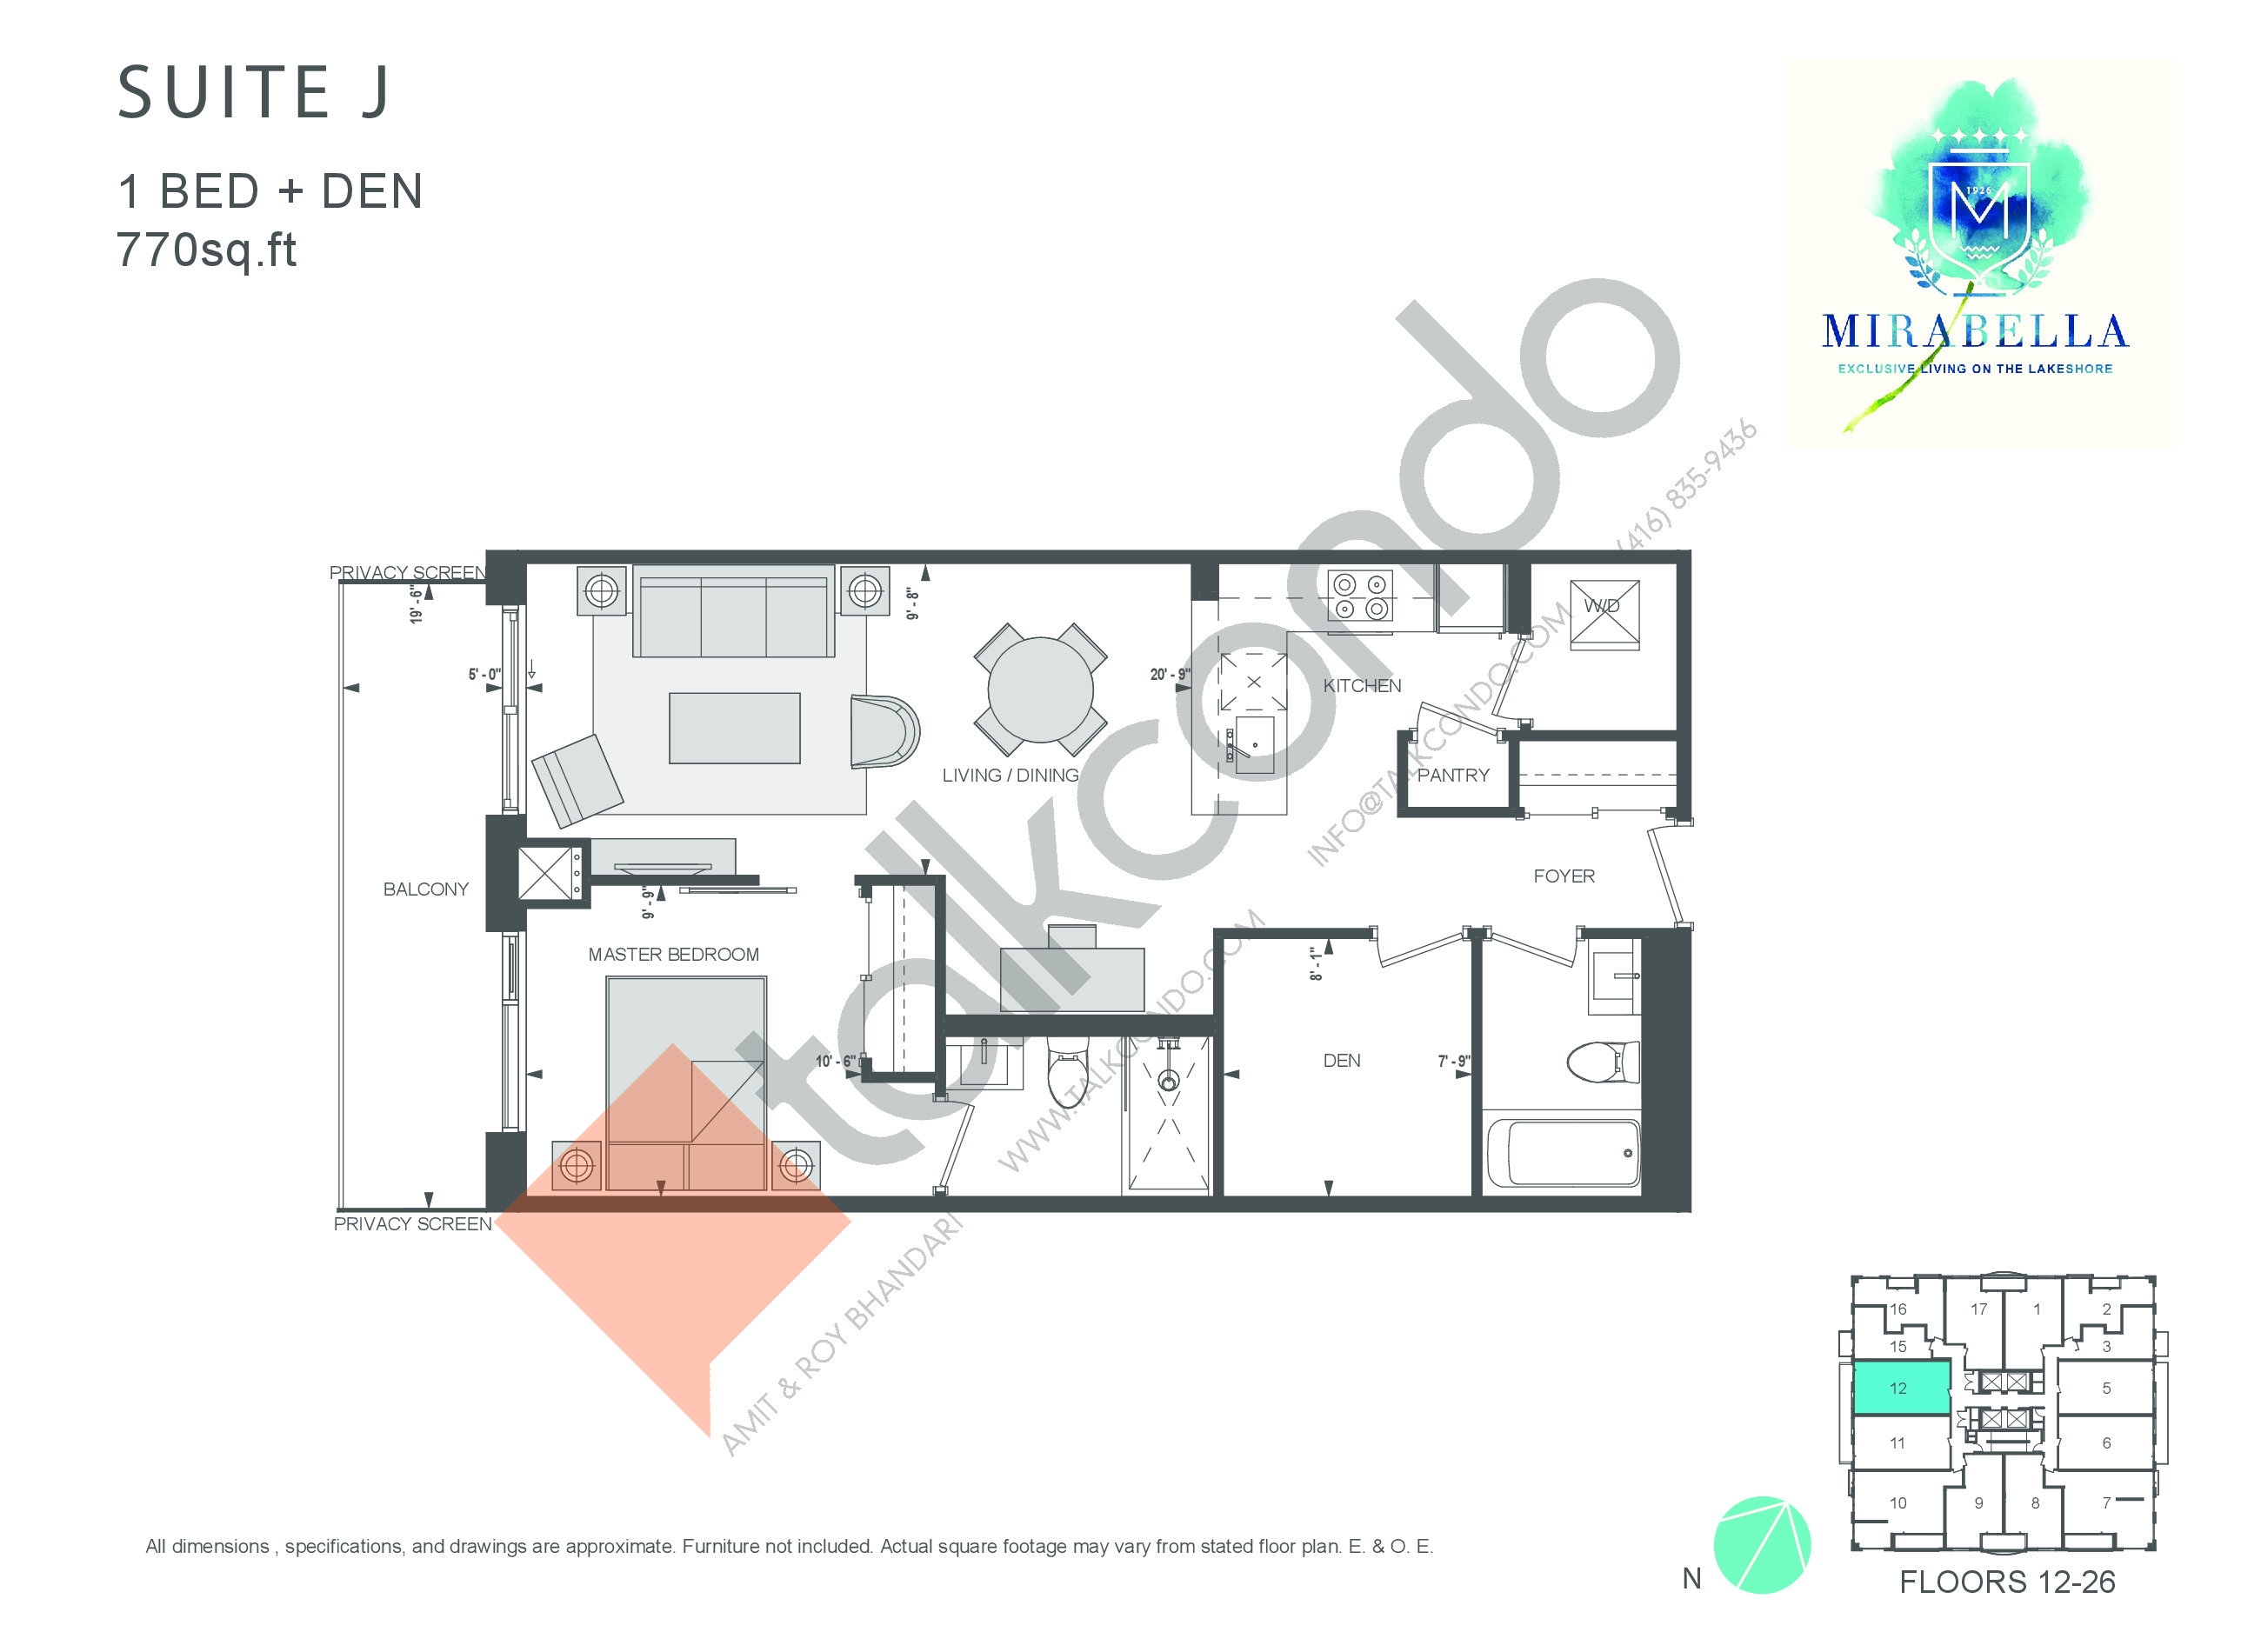 Suite J Floor Plan at Mirabella Luxury Condos East Tower - 770 sq.ft